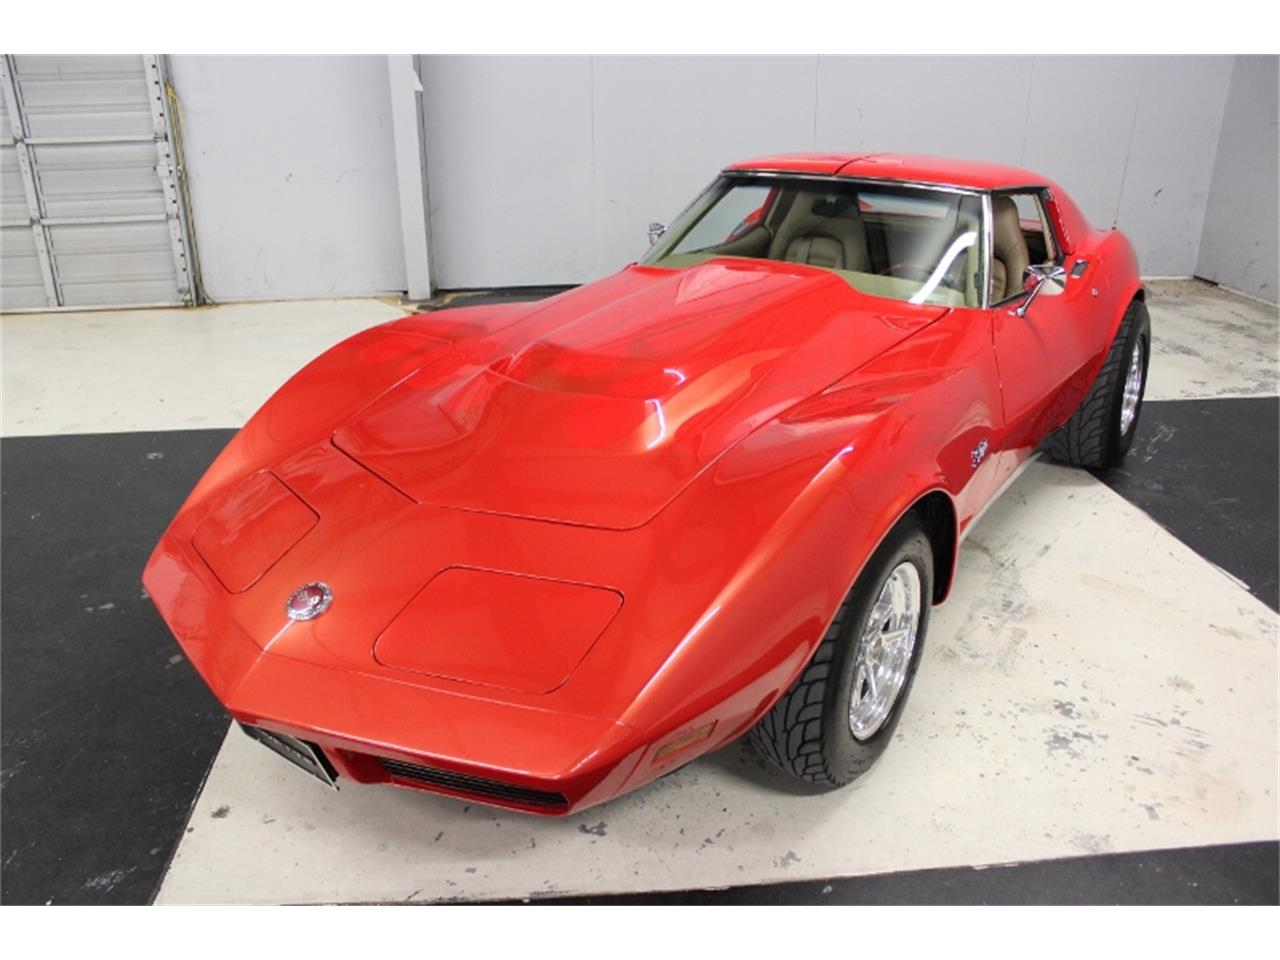 1973 Chevrolet Corvette for sale in Lillington, NC – photo 47